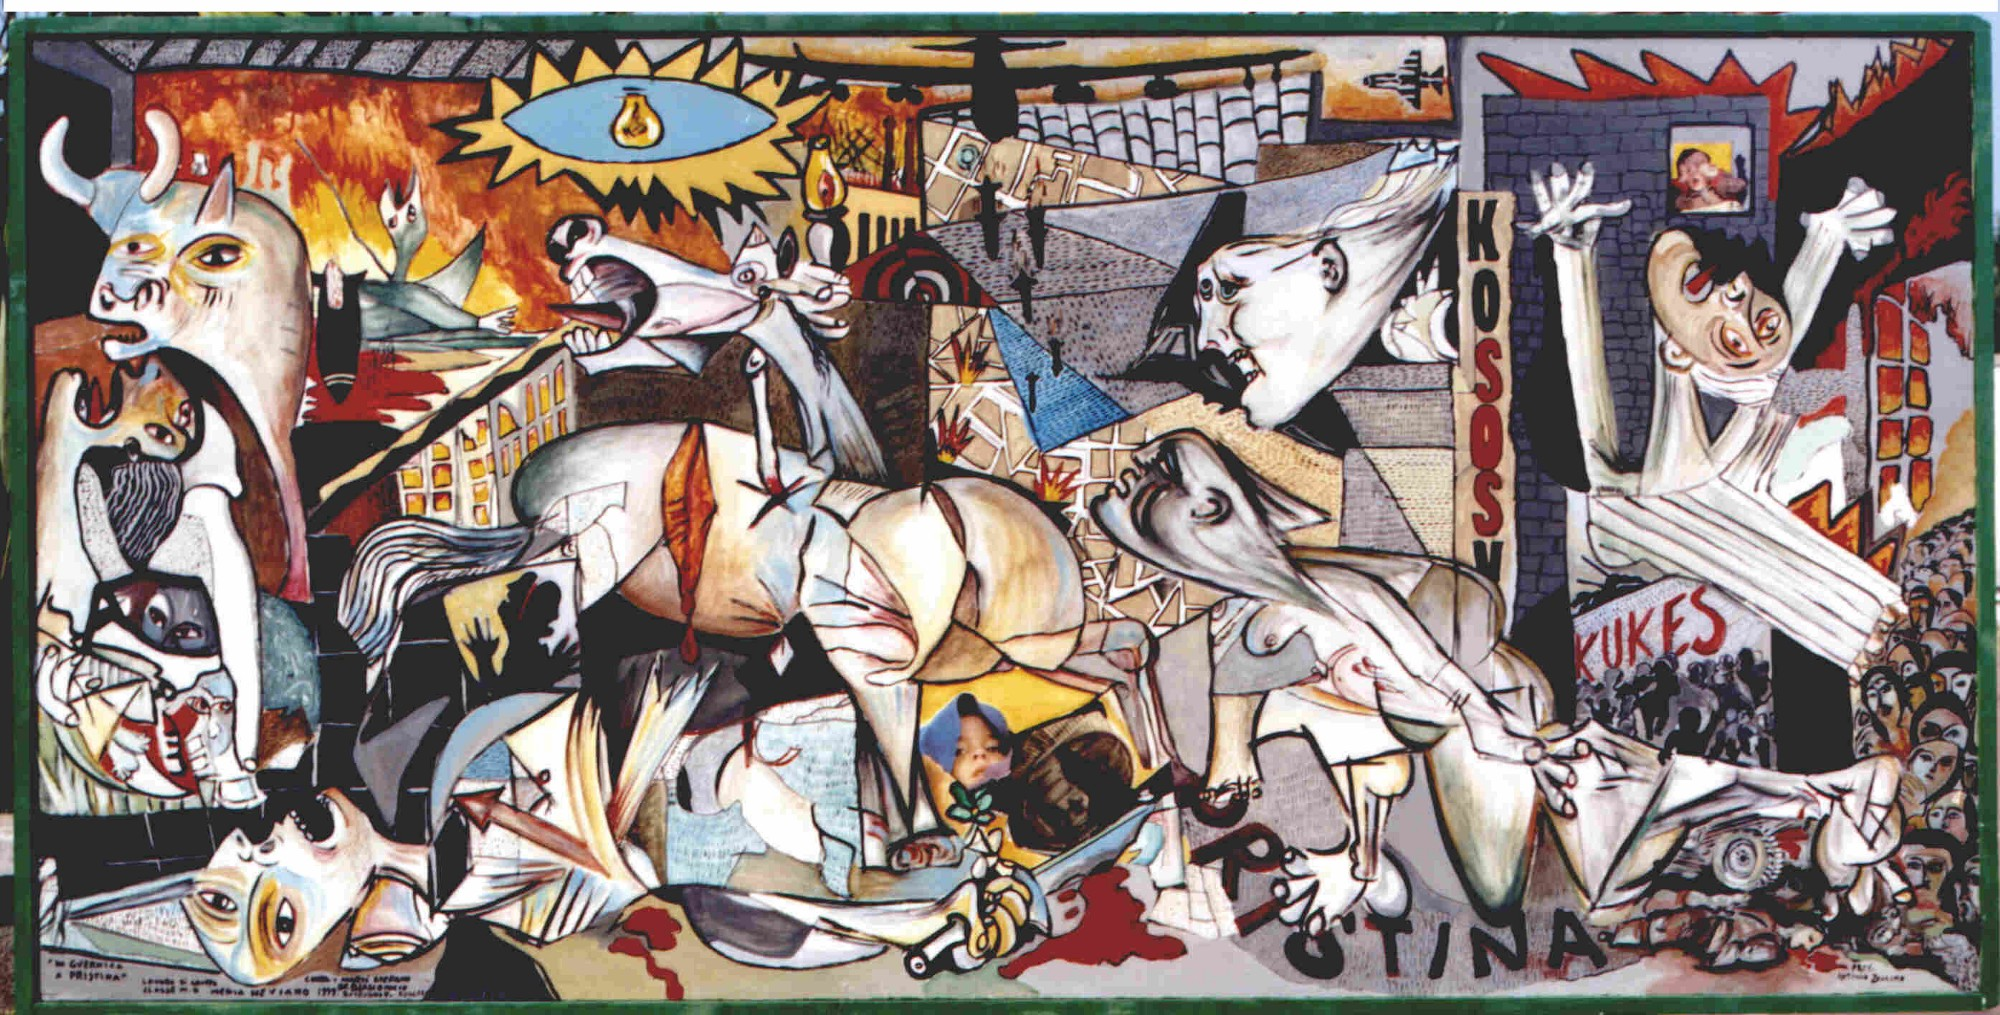 picasso analysis Critical analysis of guernica - by bryce craig spanish artist pablo picasso can often be collectively seen as the greatest and most influential artist of the twentieth century.